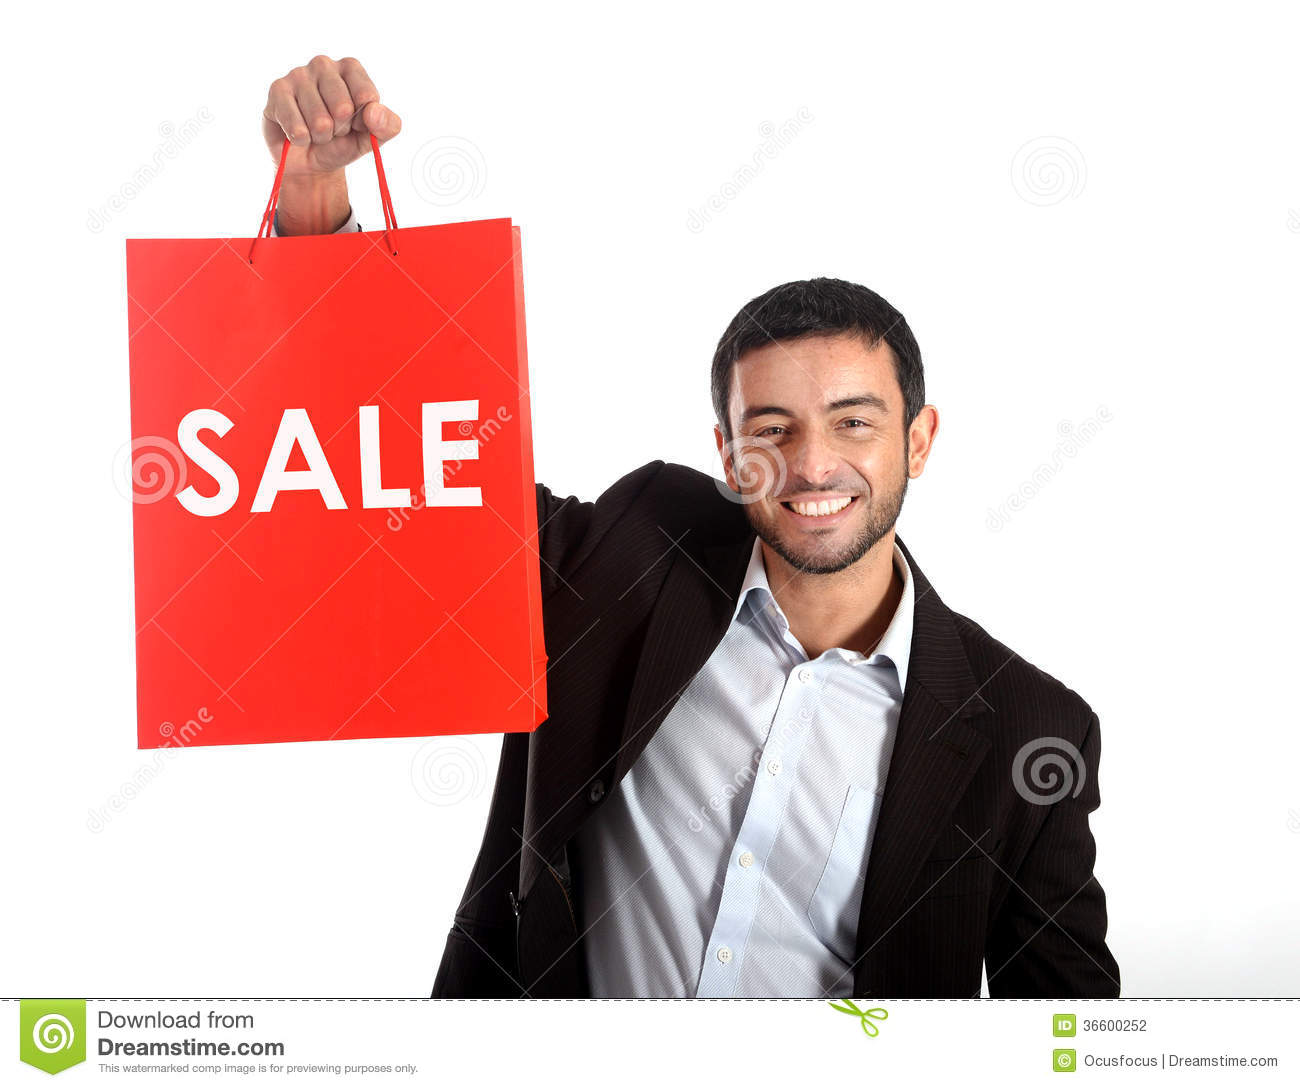 Man carrying a red sale shopping bag